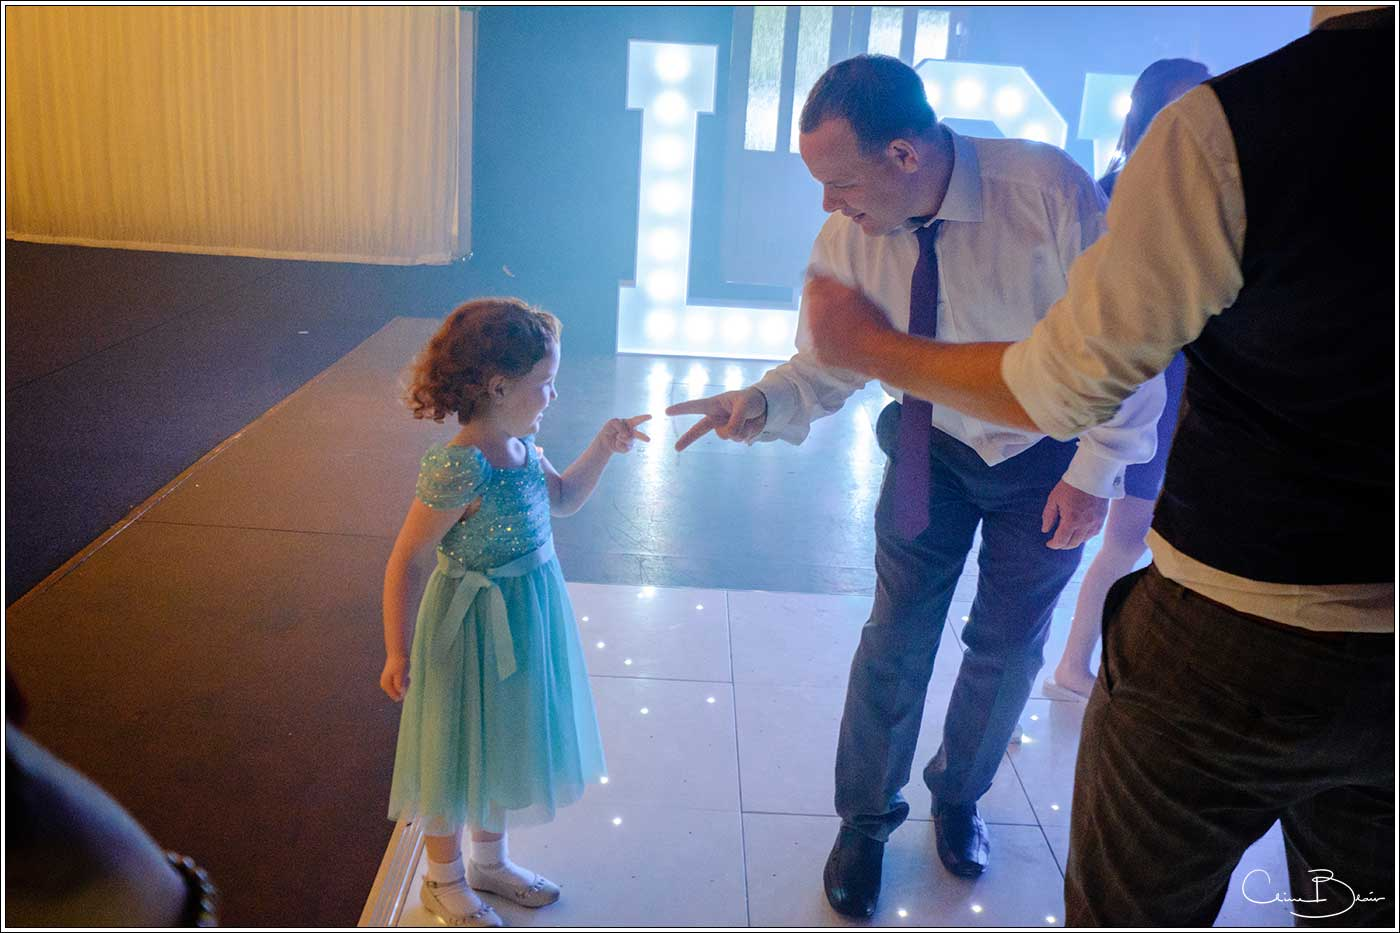 Coombe Abbey wedding photography showing man dancing with a young girl on the dance floor